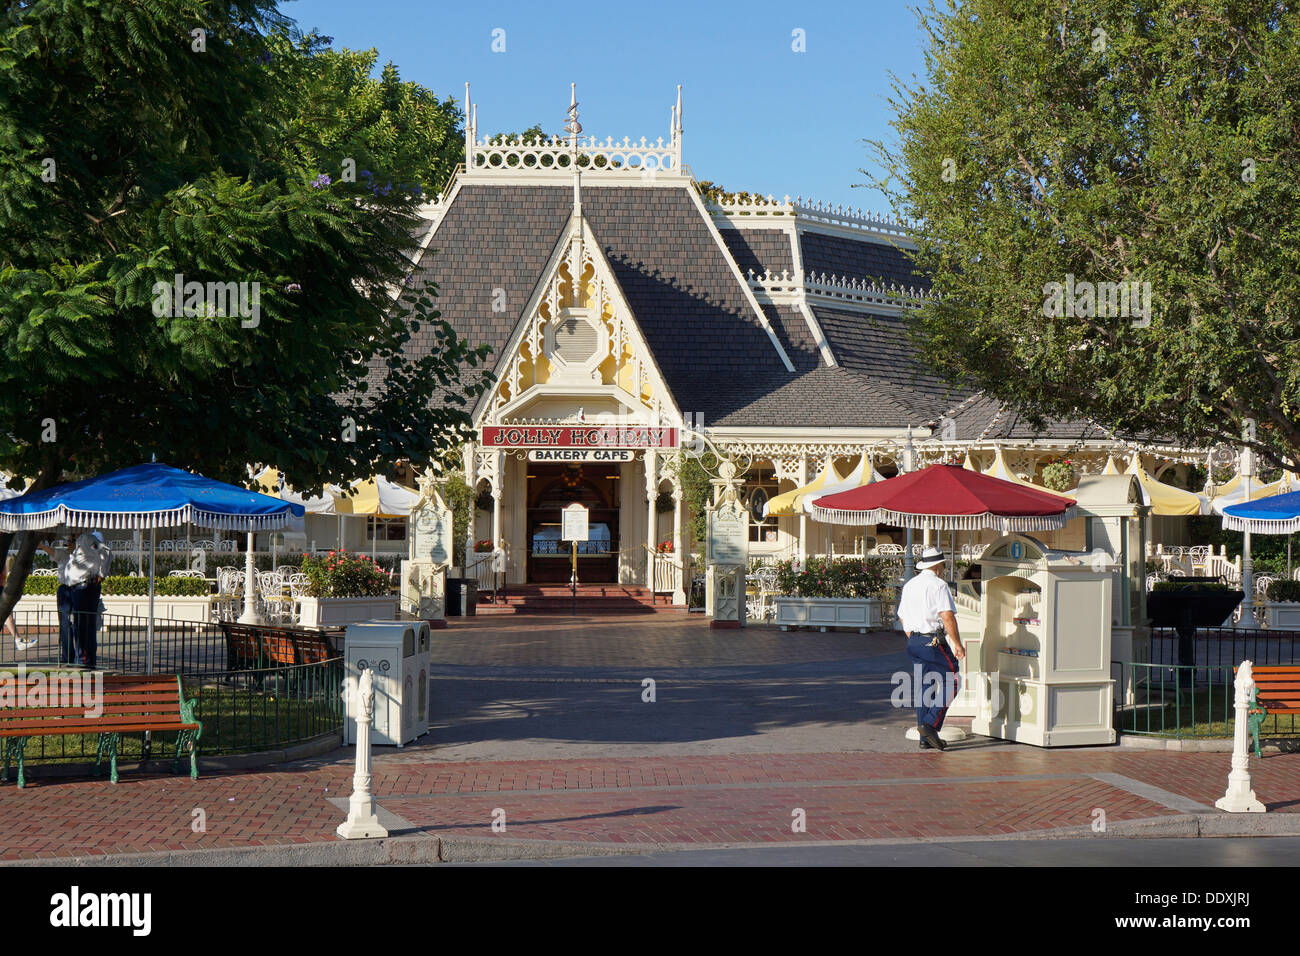 Disneyland, Jolly Holiday, Bakery Café sur la rue Main, à Anaheim, Californie Photo Stock